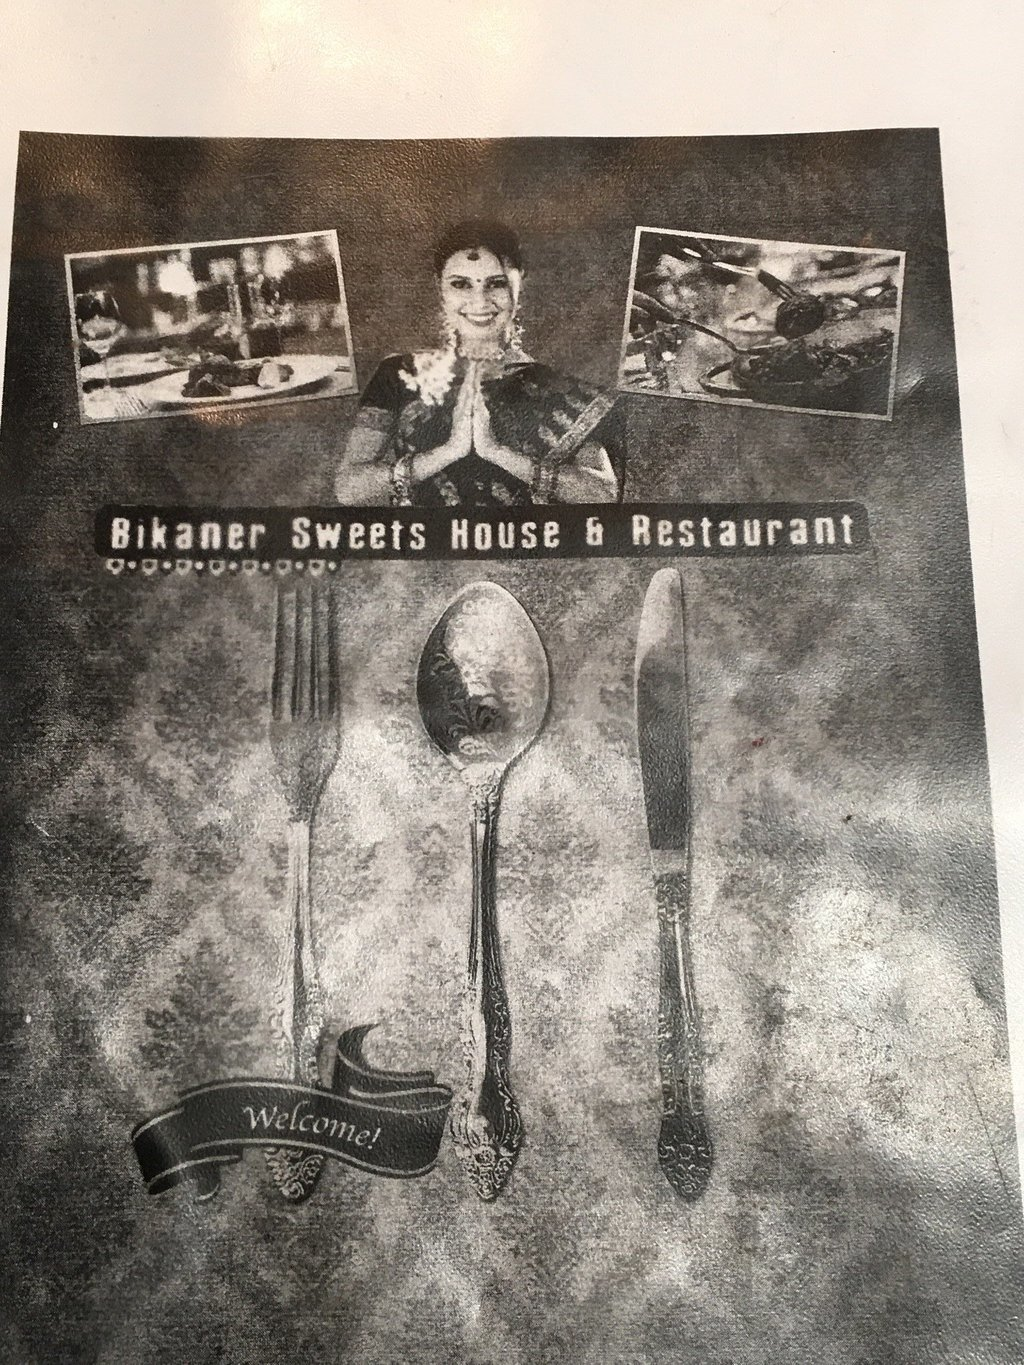 Bikaner sweets house and restaurant